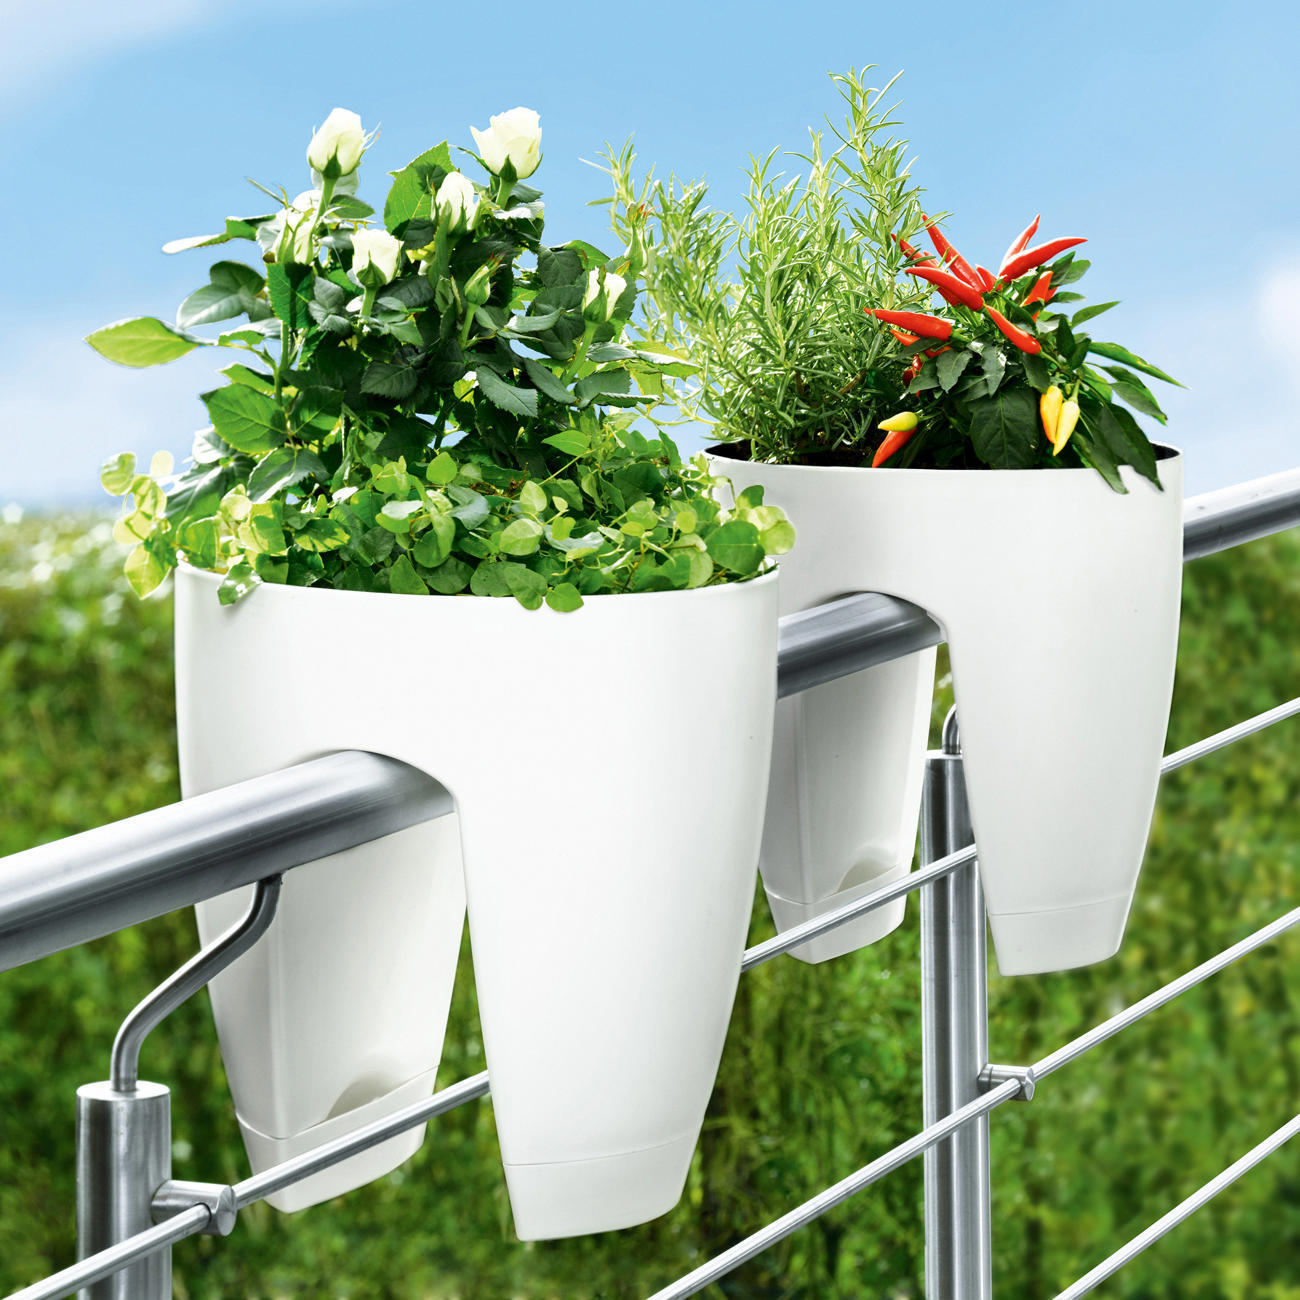 Deck Rail Planters | Fence Planter Boxes | Planters for Deck Rails